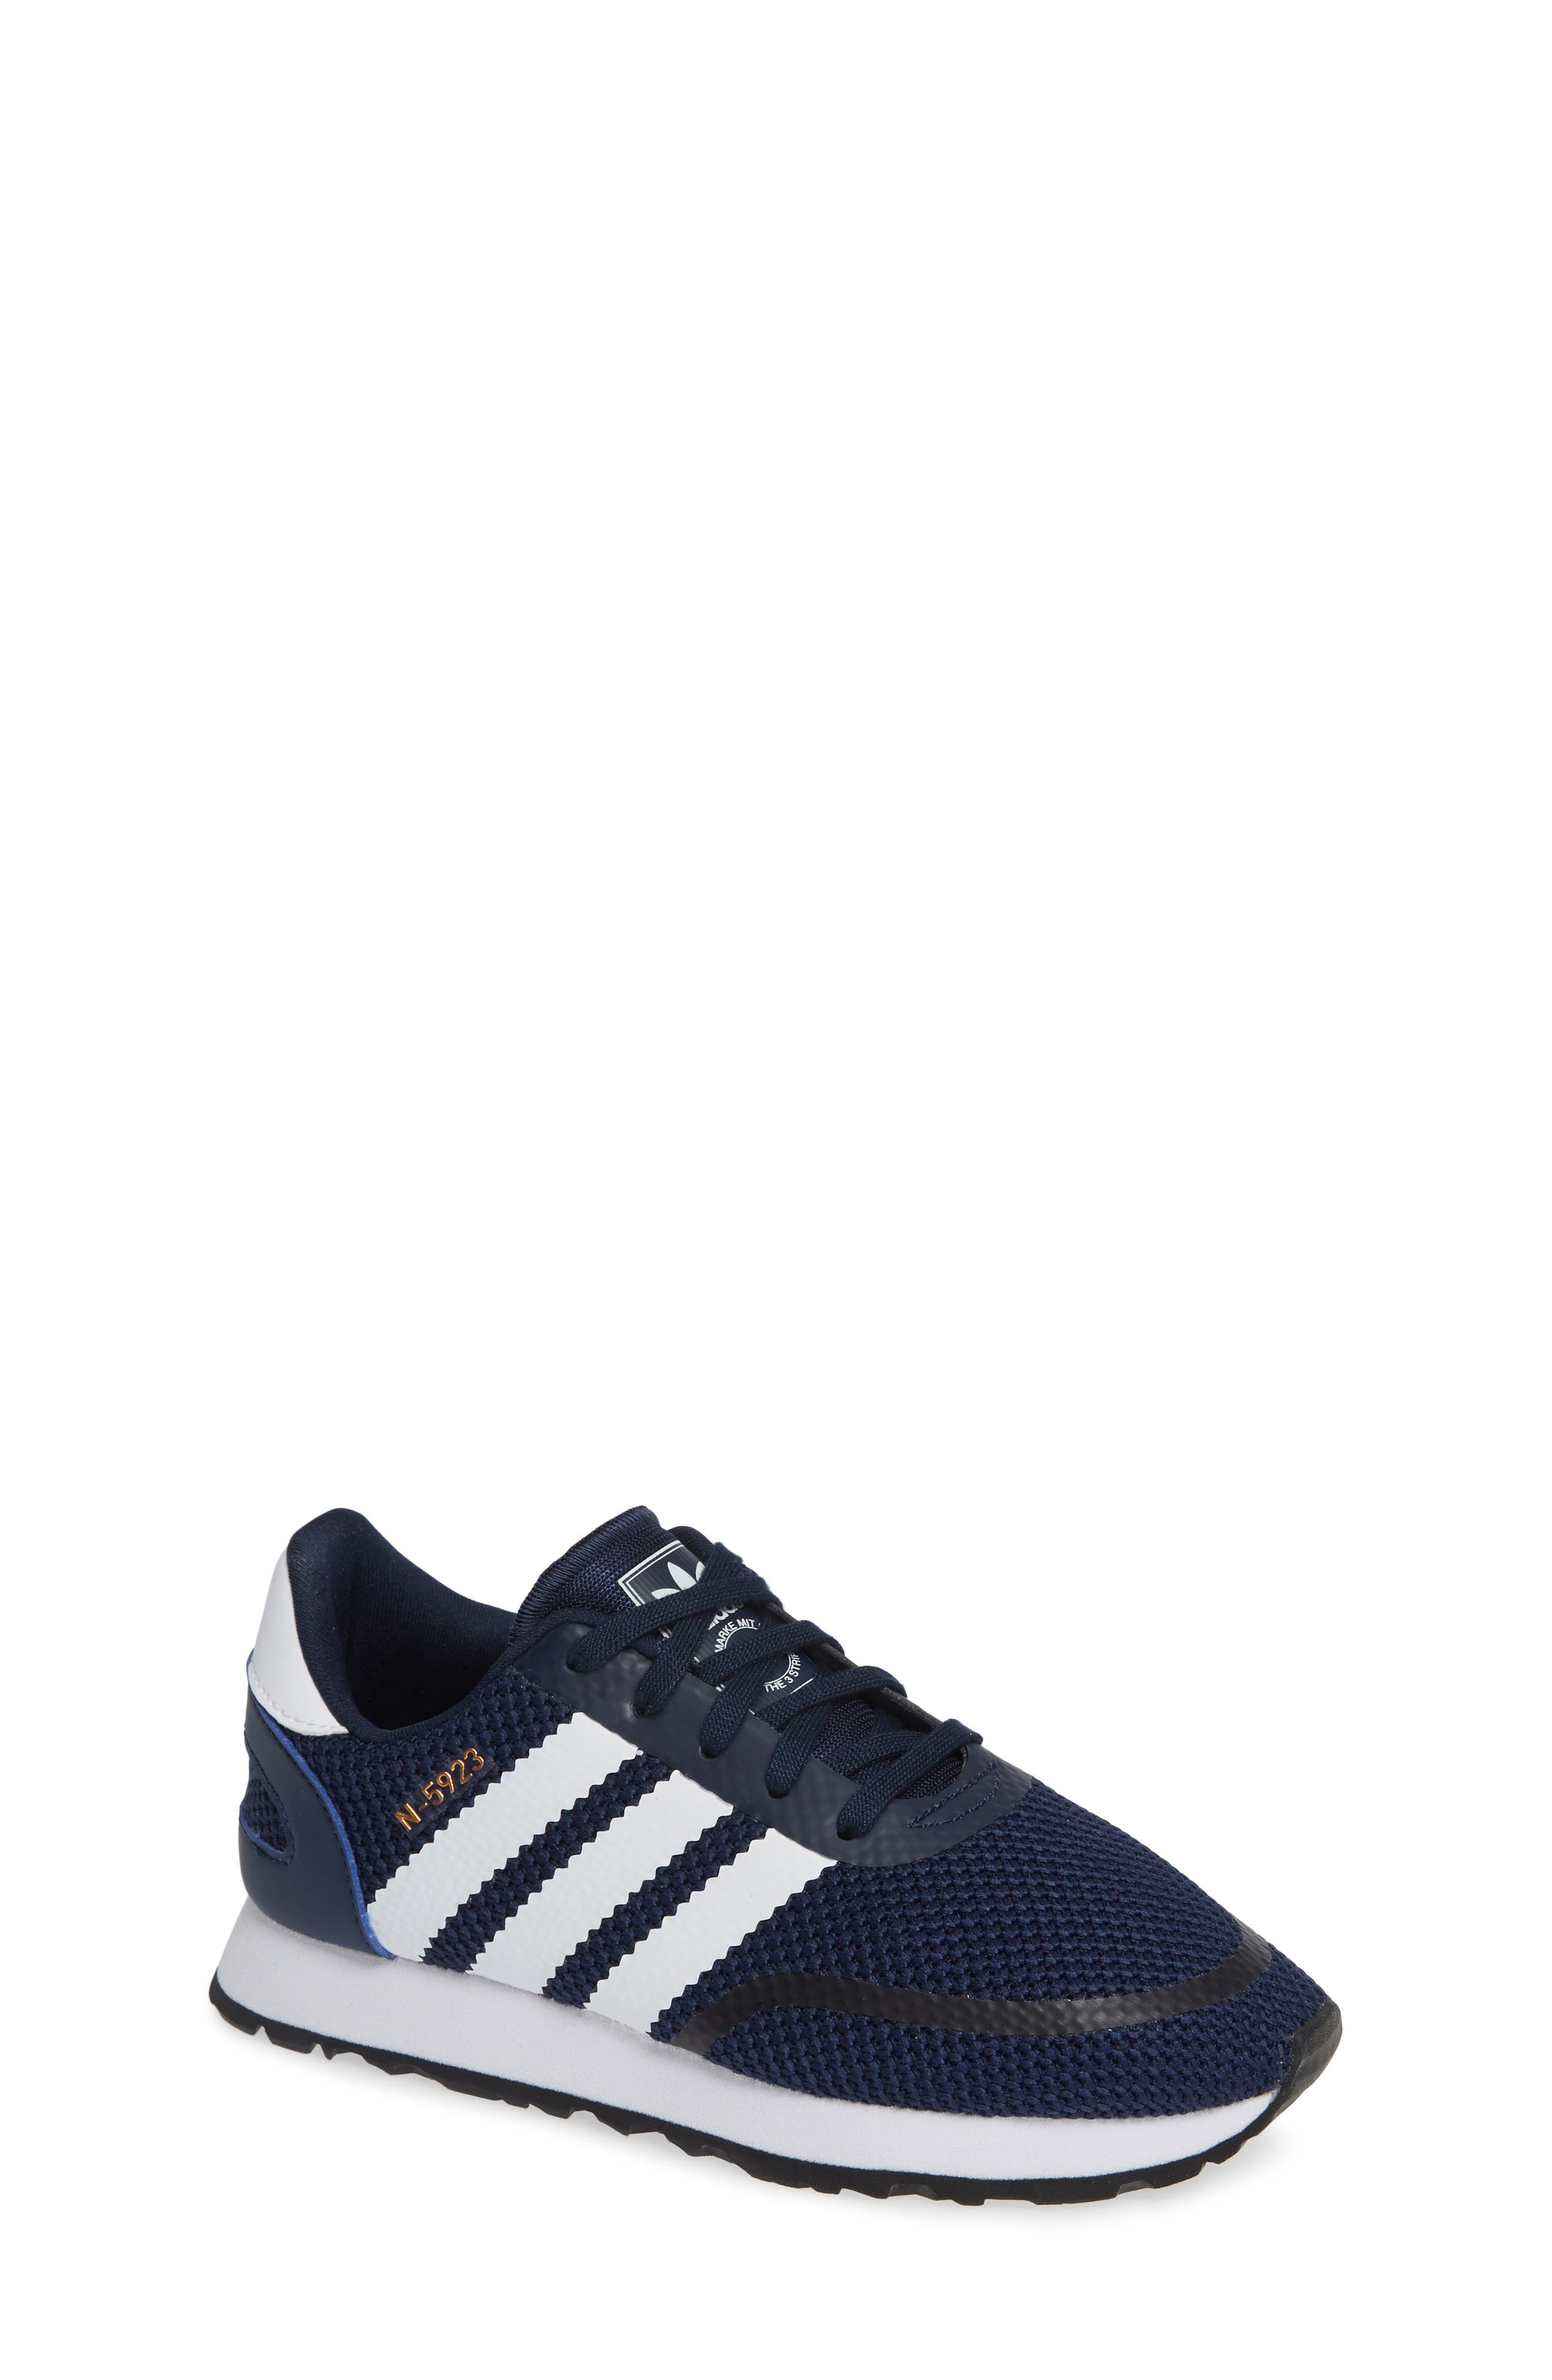 N-5923 Classic Sneaker,                         Main,                         color, COLLEGIATE NAVY / WHITE